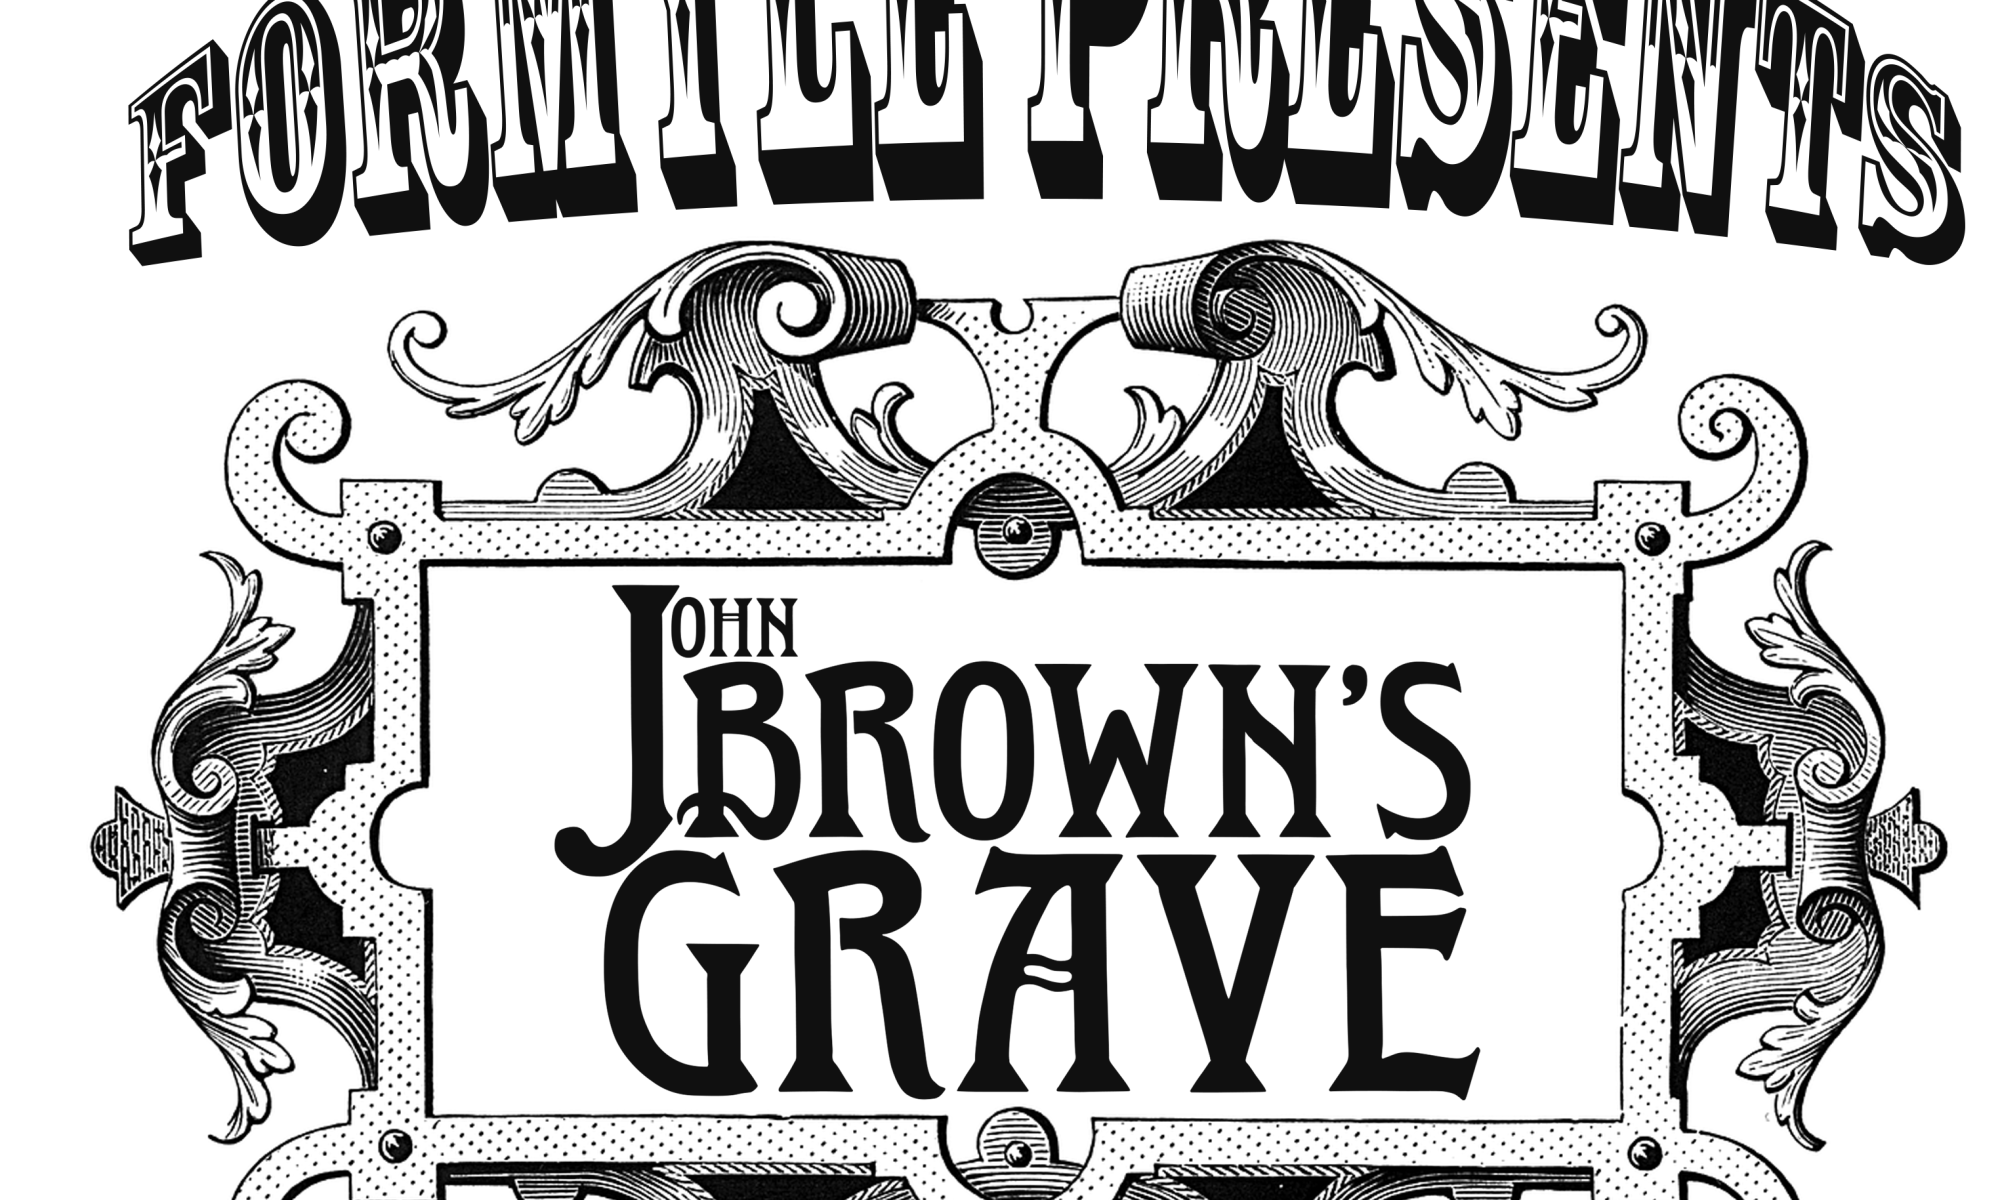 Formyle Presents John Brown's Grave